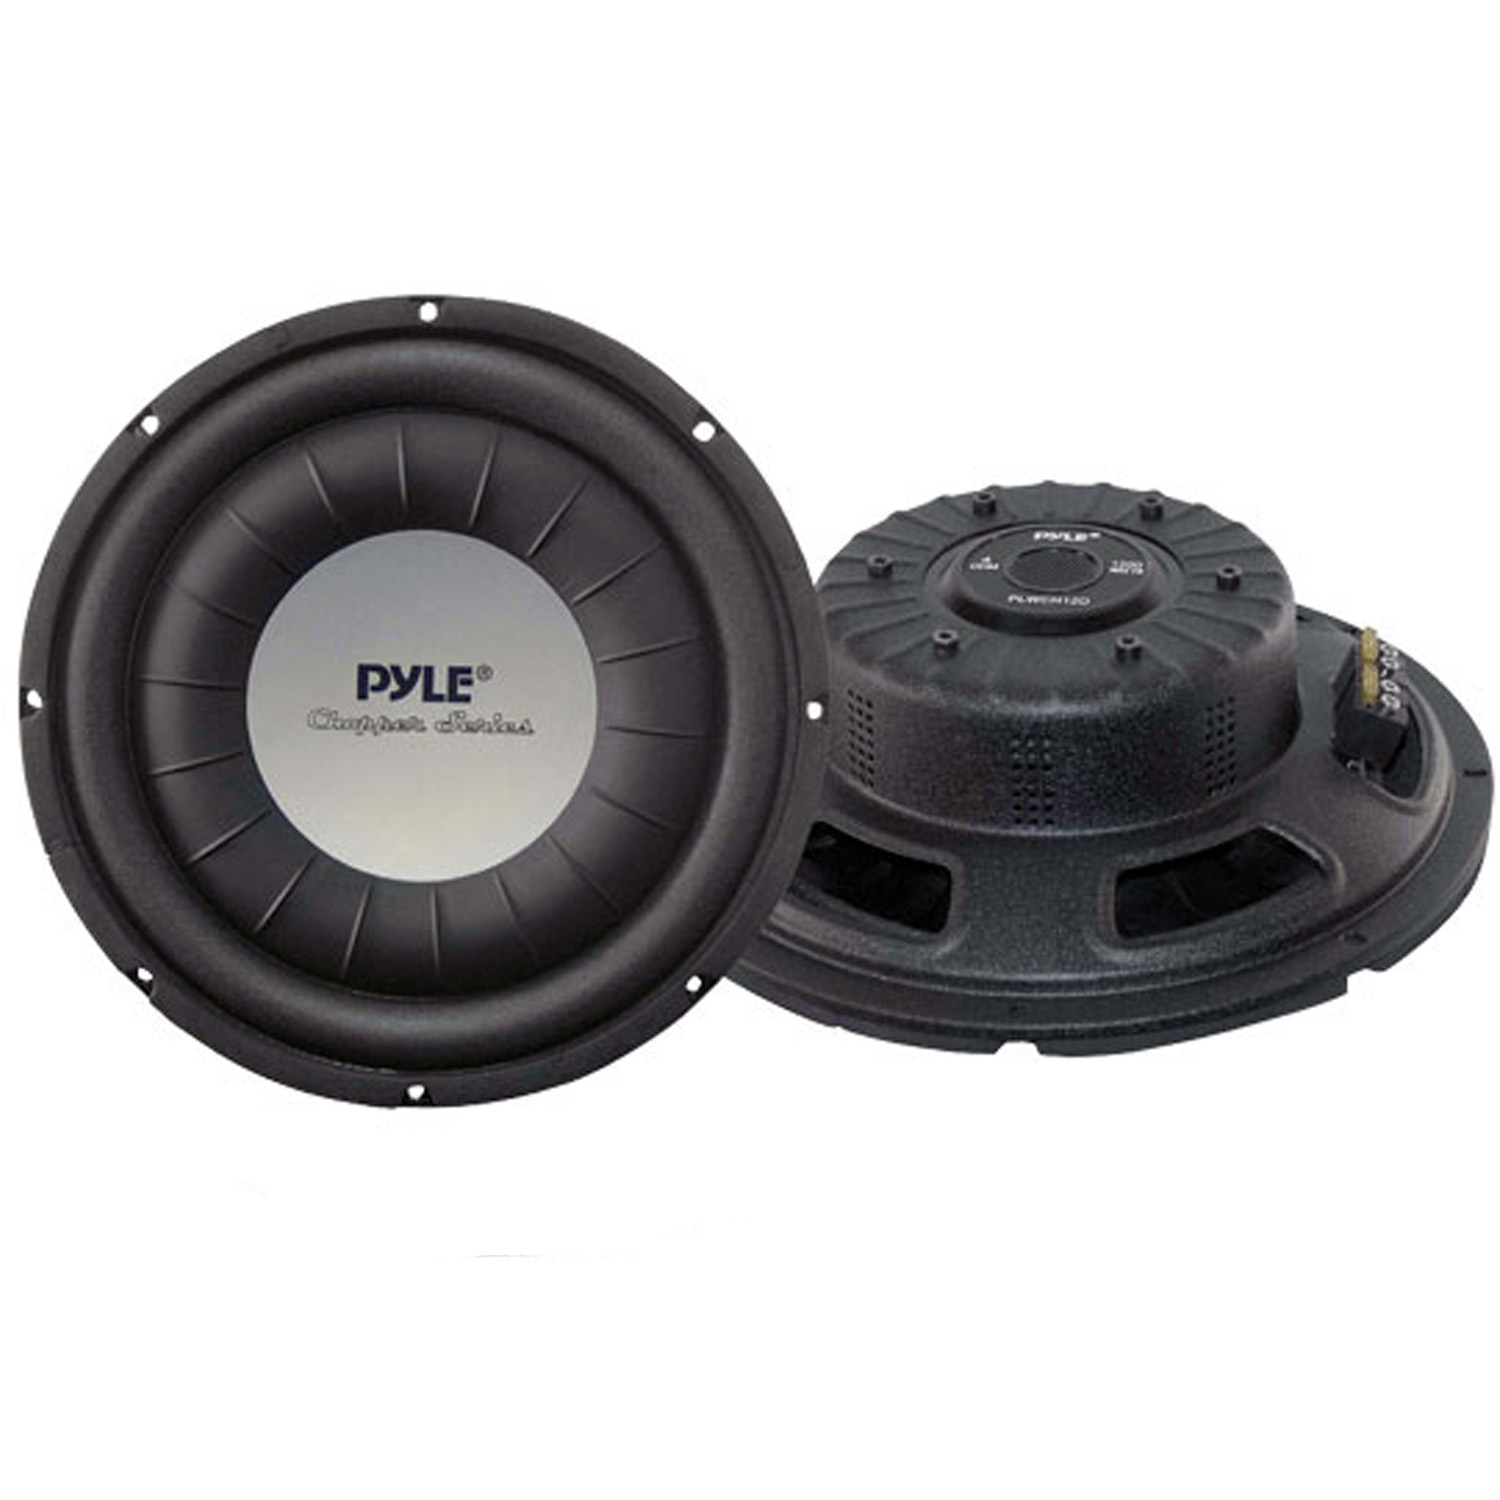 "Pyle 12"" 1200 Watt Ultra Slim DVC Subwoofer"